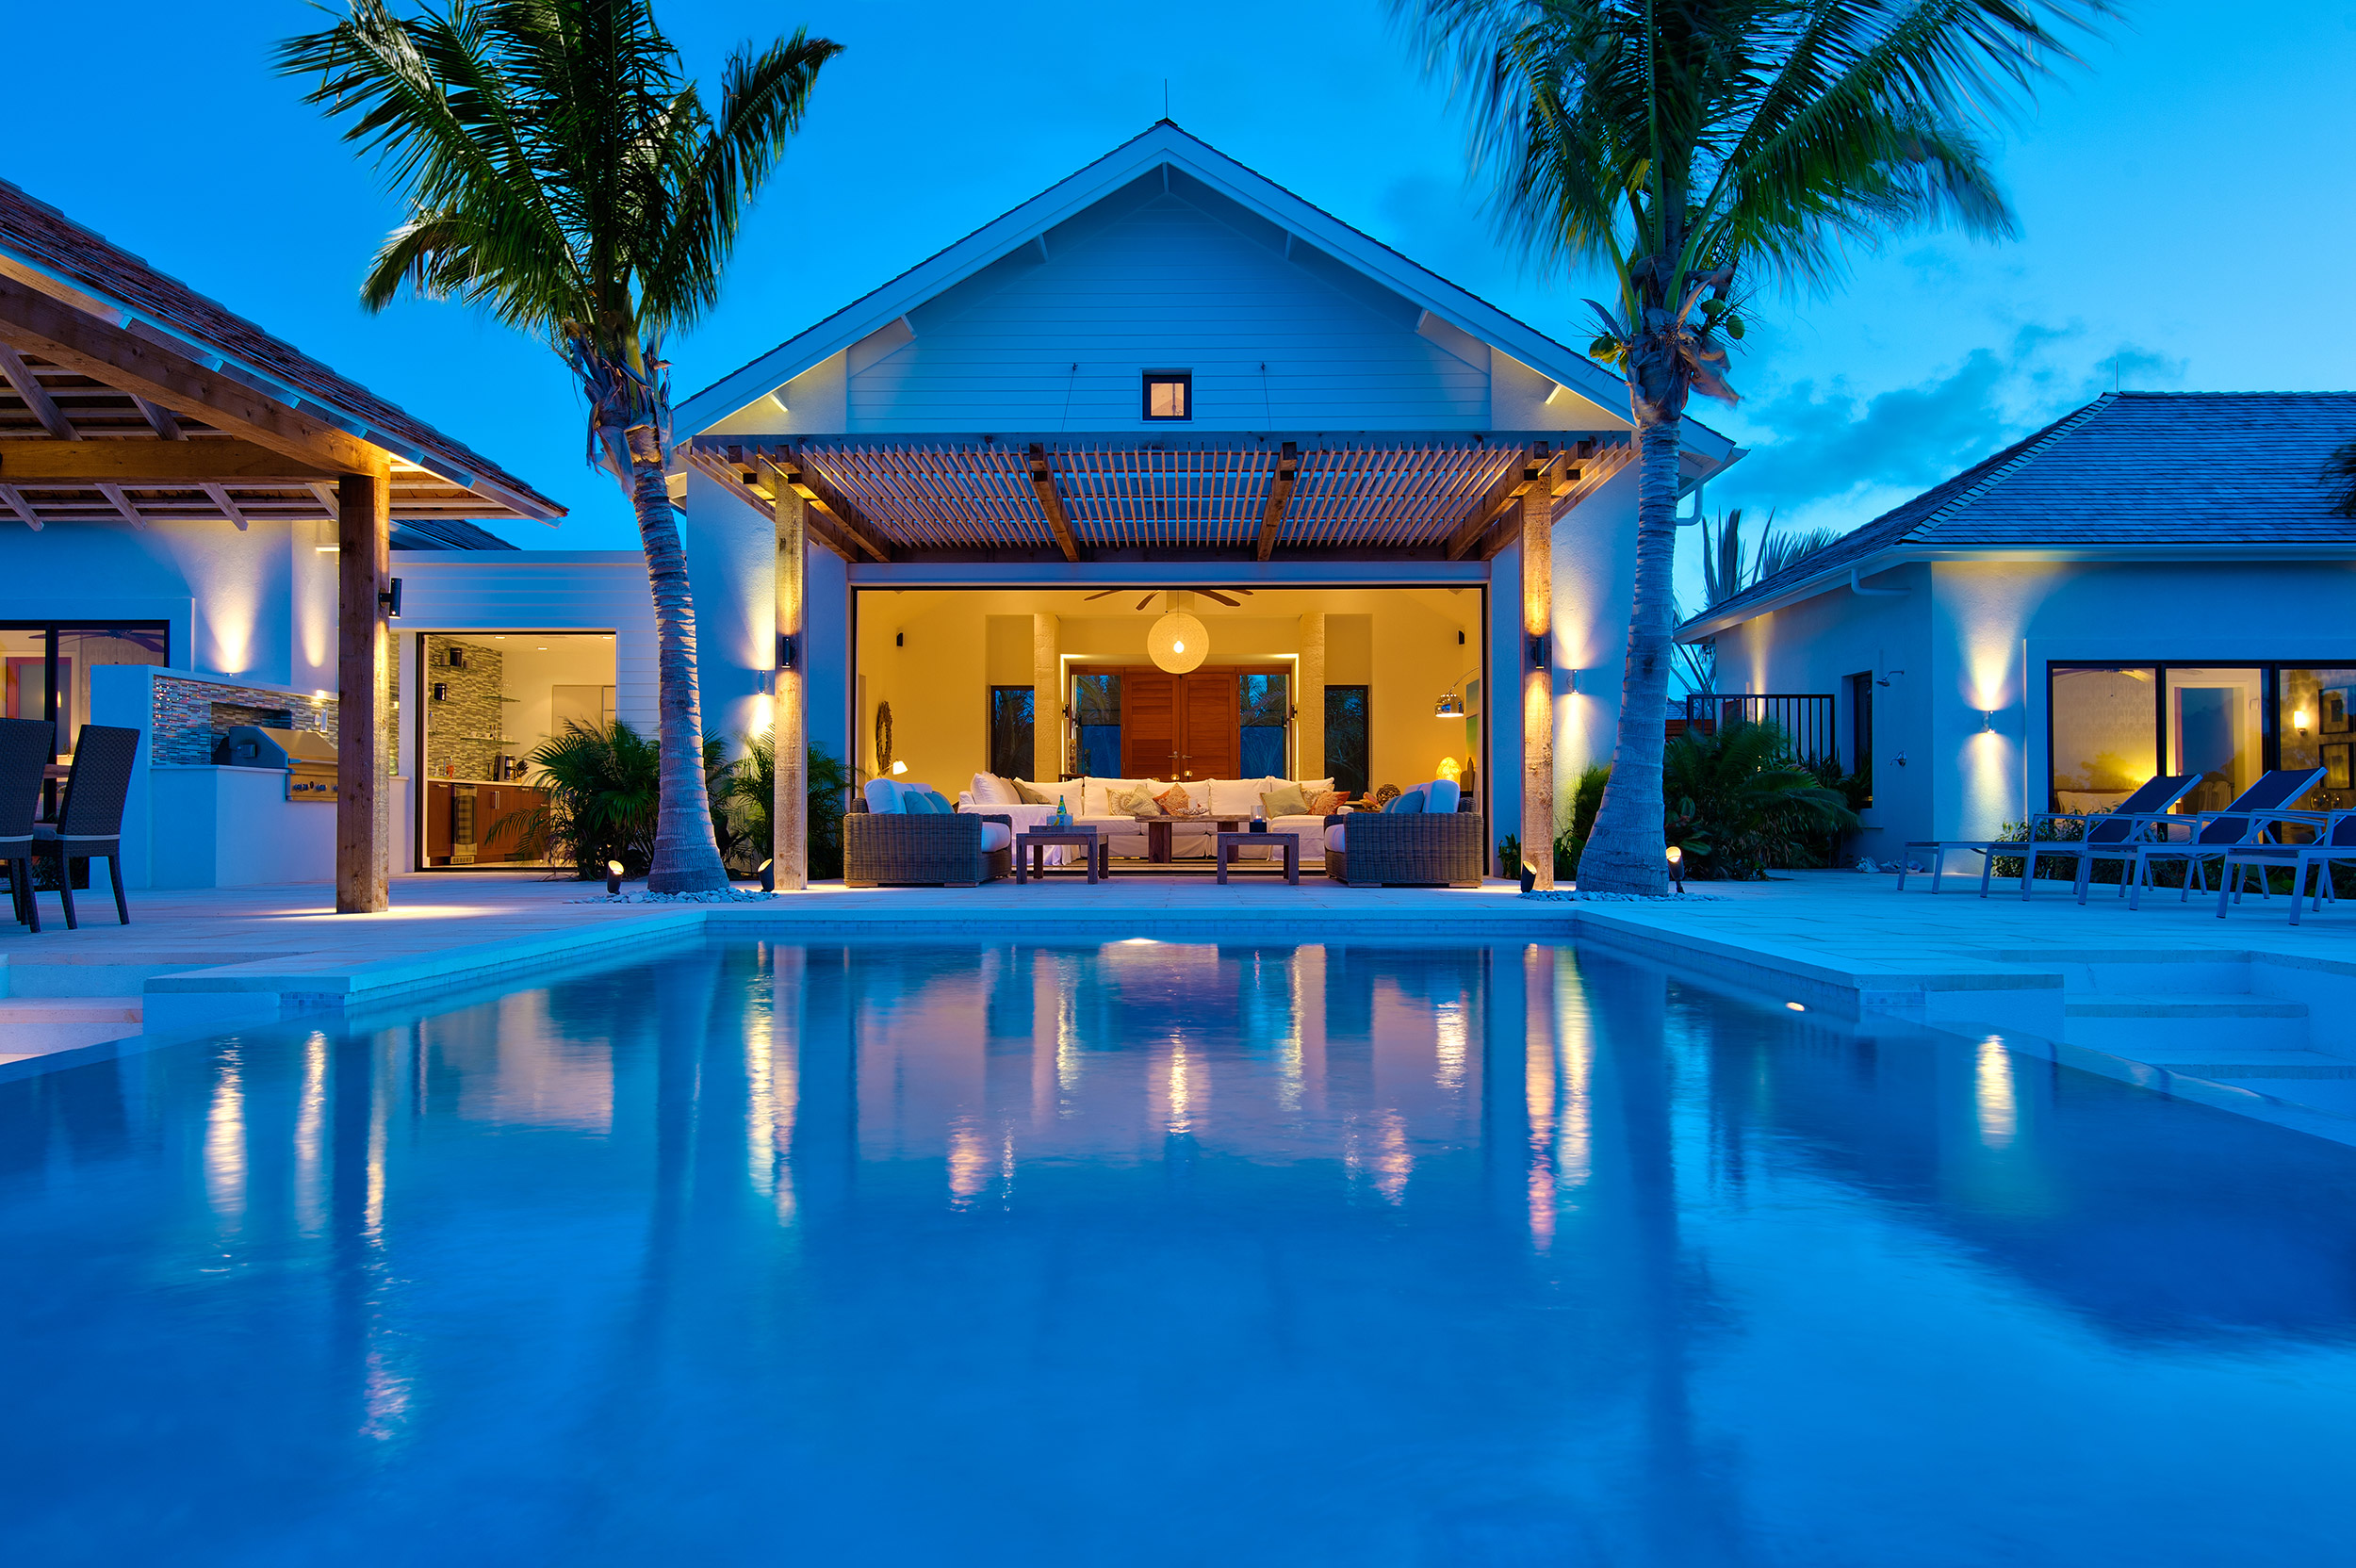 Castaway - evening view of the villa from the pool